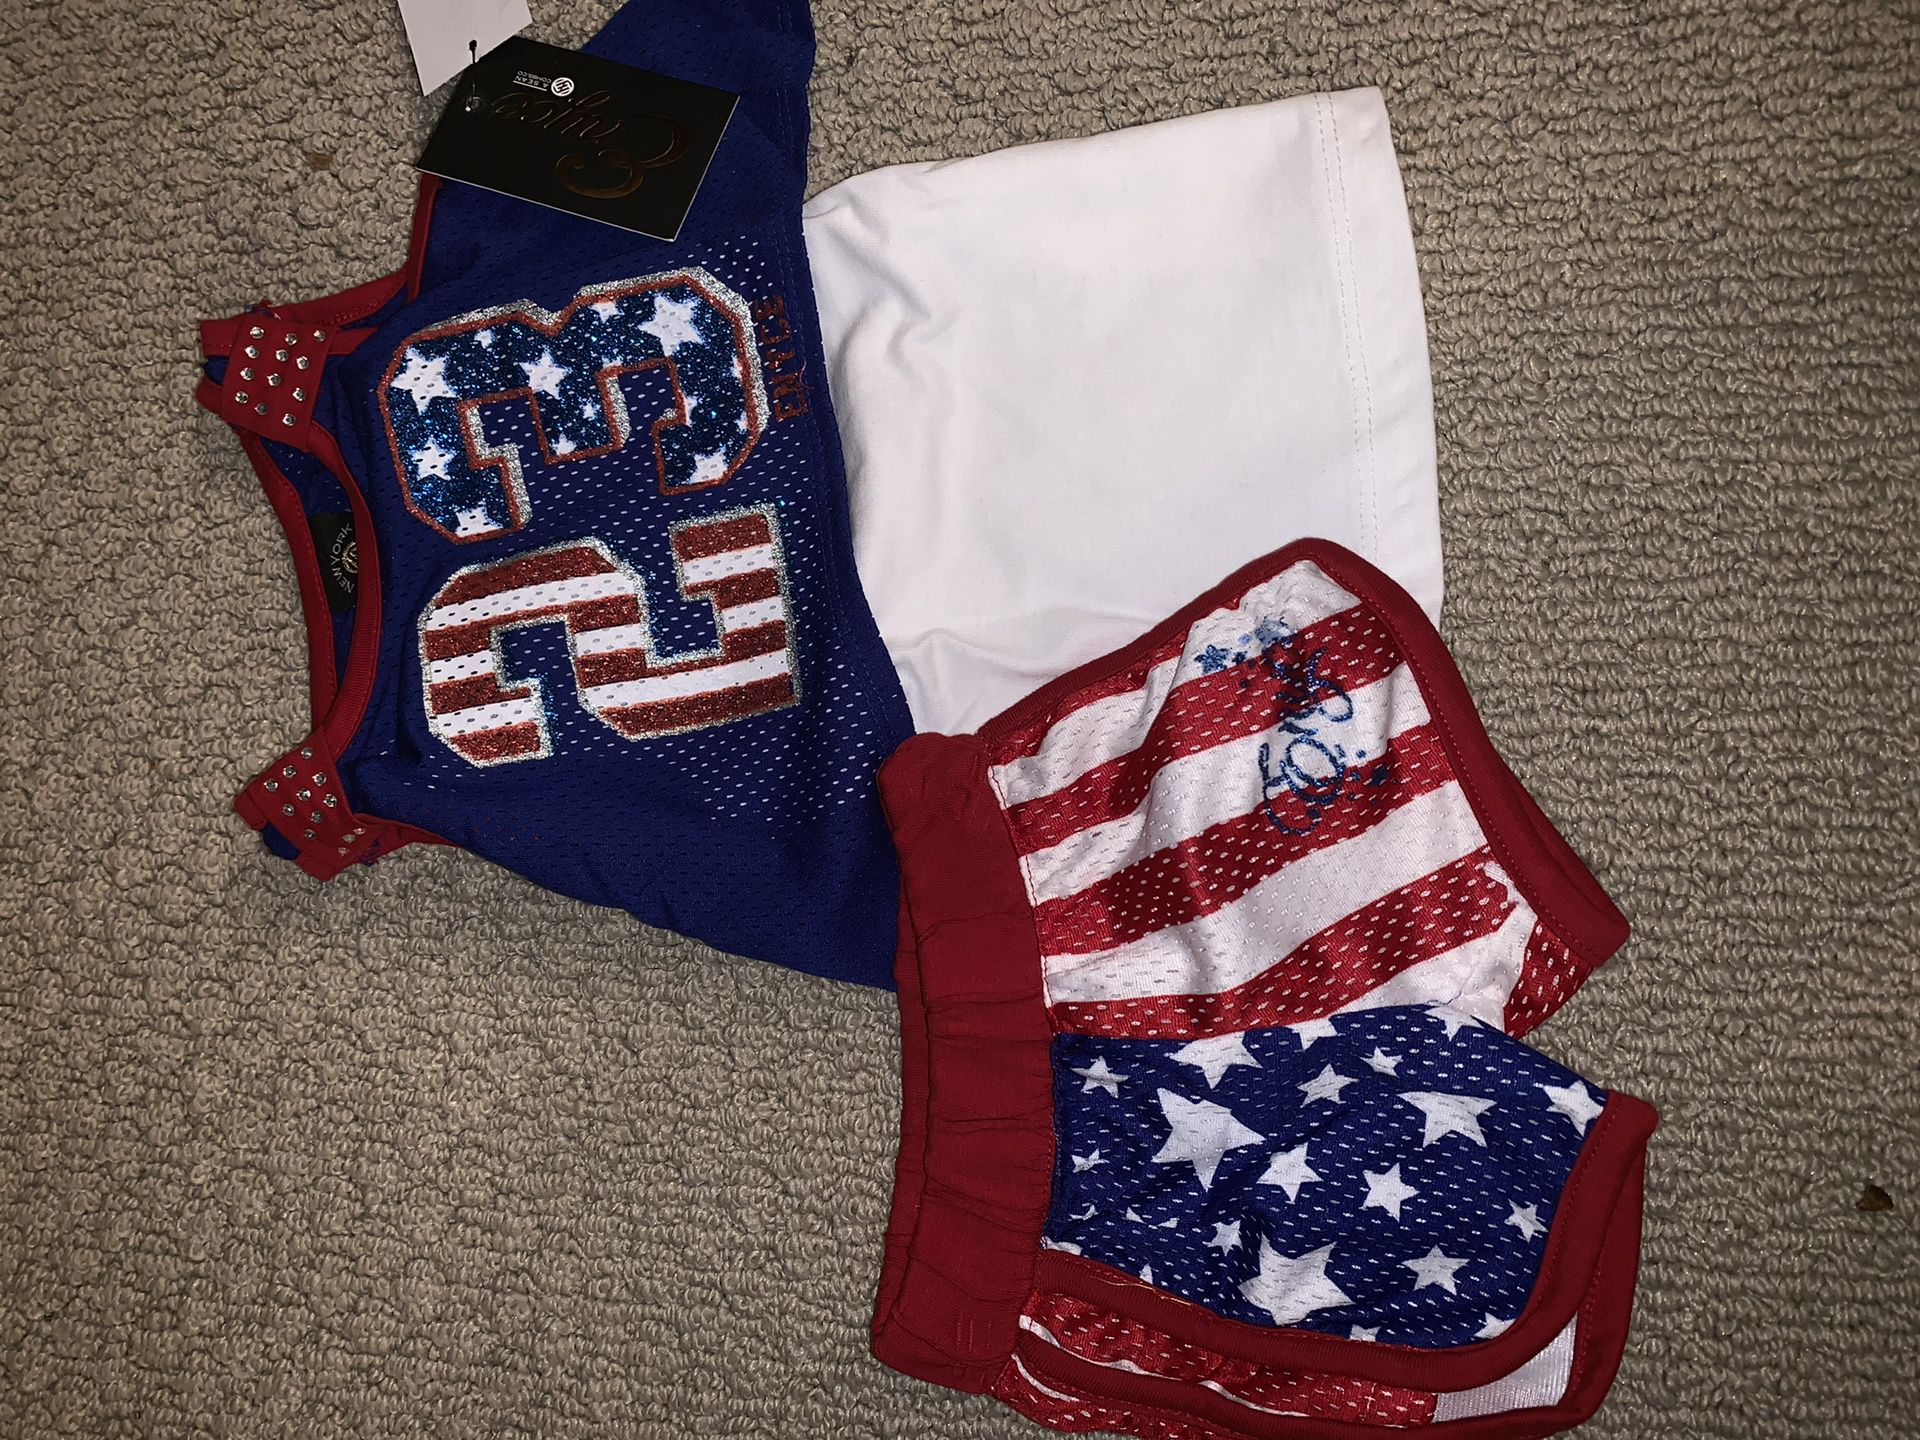 New 2 piece infant Enyce short set size 3-6 months. With tags